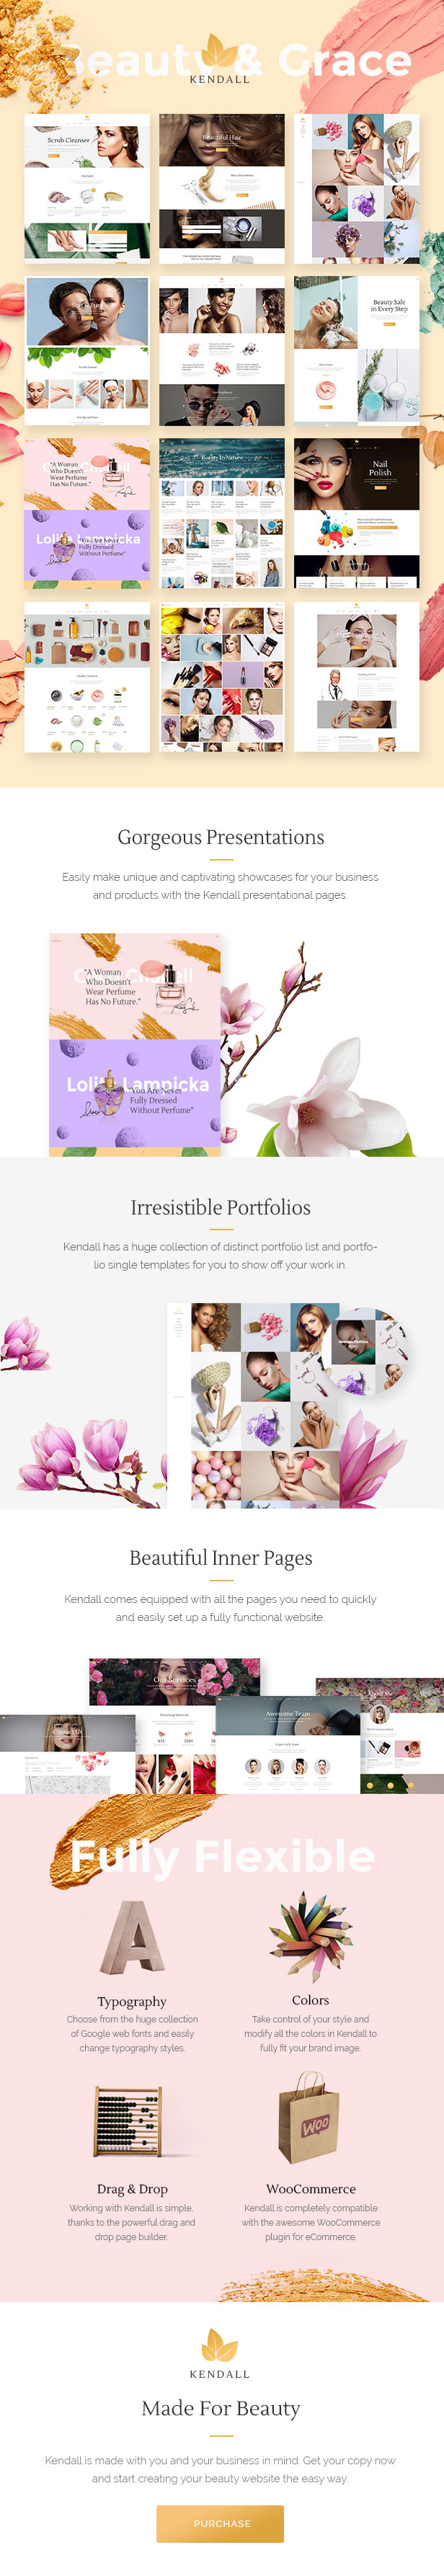 Kendall - Spa, Hair & Beauty Salon Theme - 1